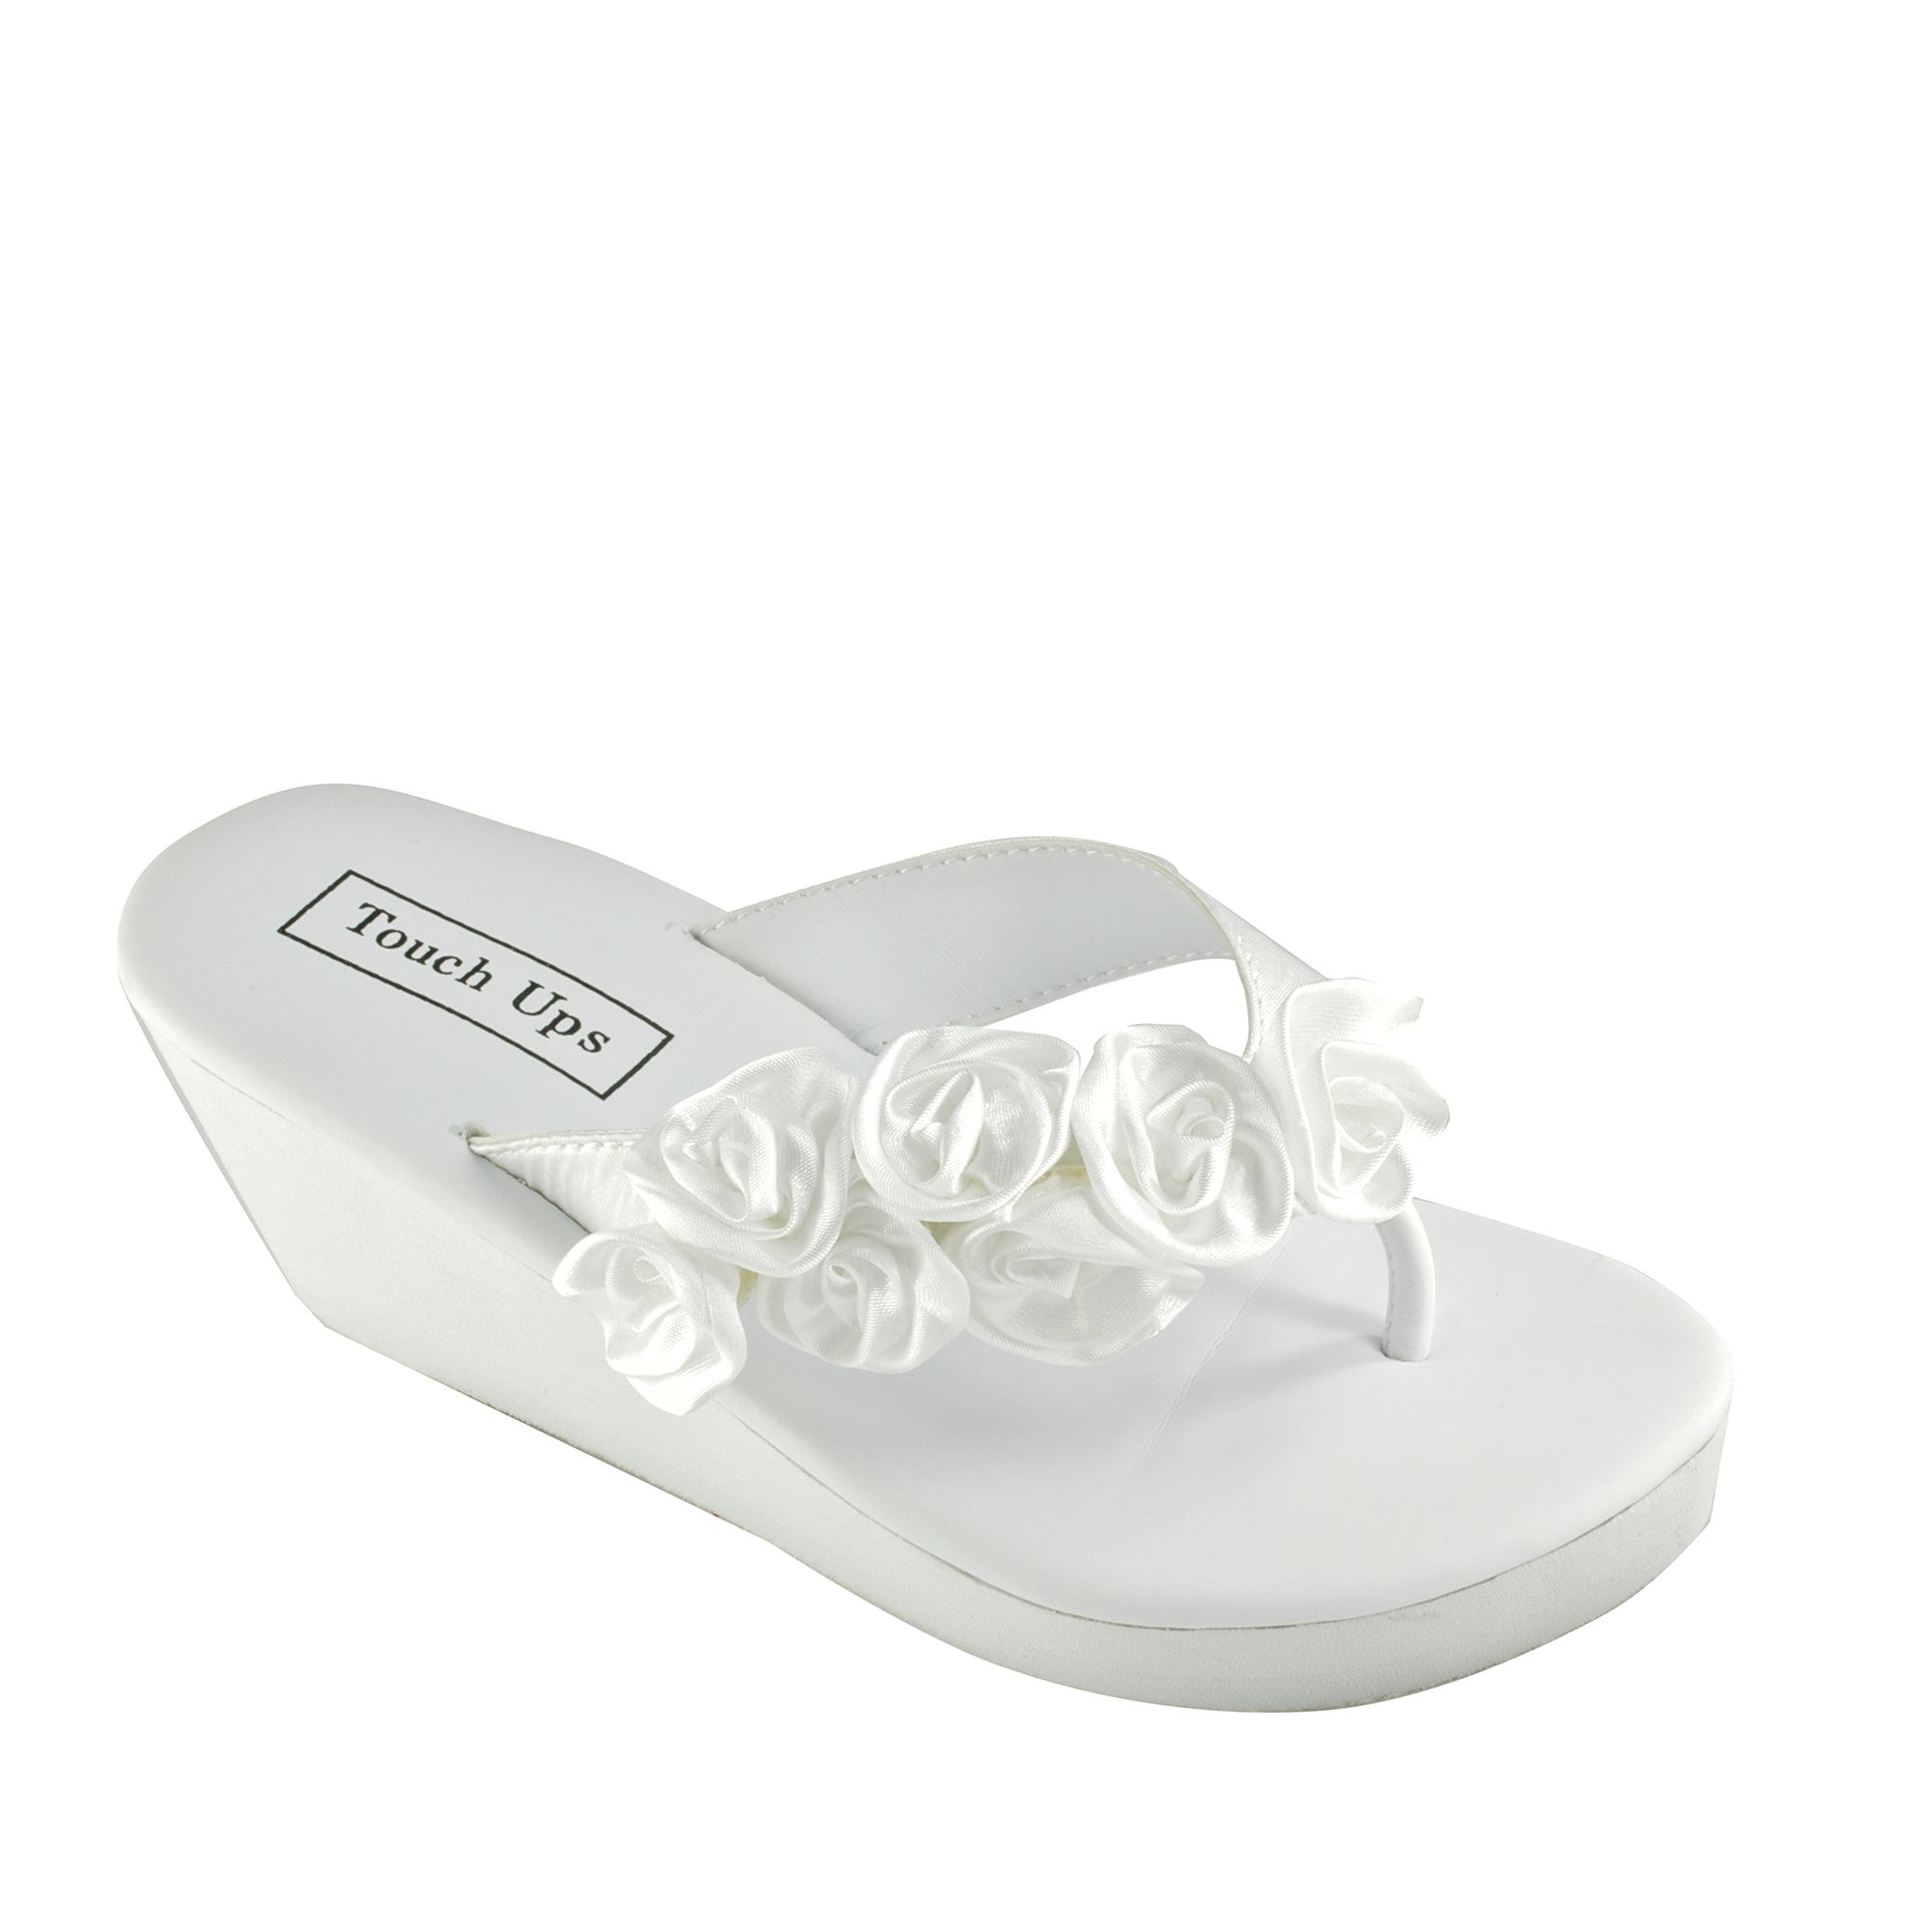 260424c5c491b Bridal flip flops in White, Ivory, Silver, and Black for brides and ...